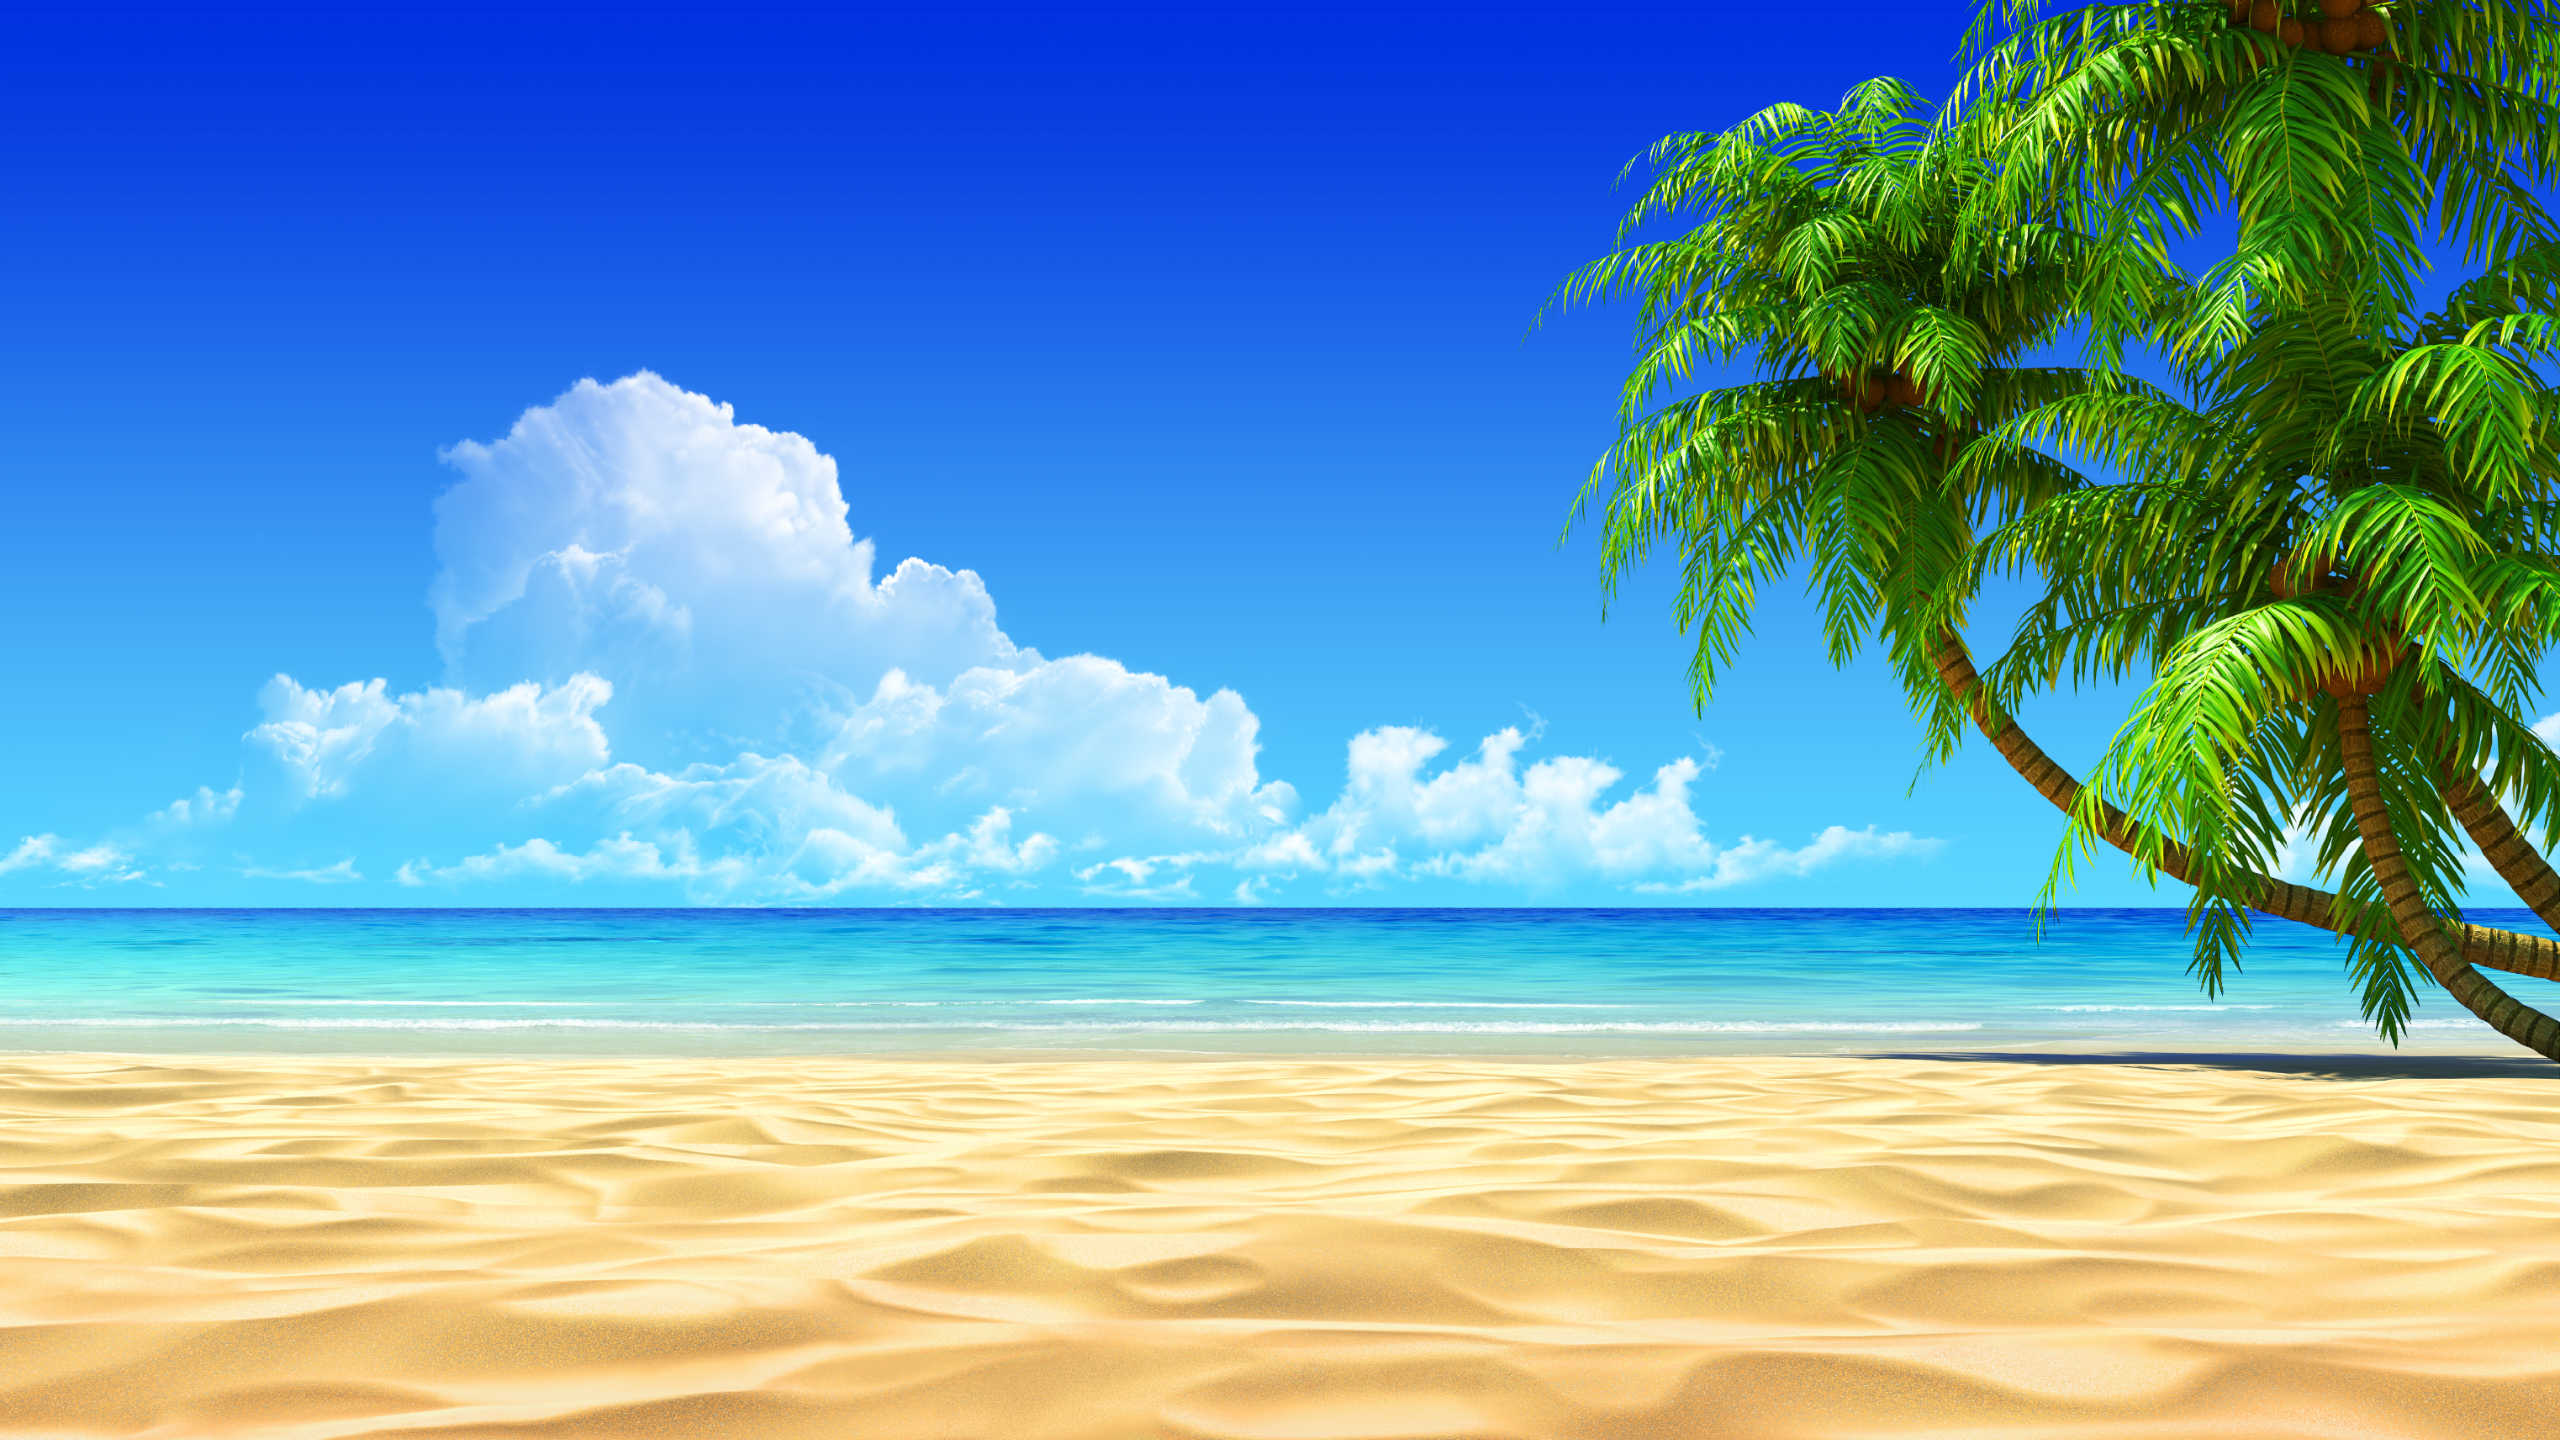 Tropical Beach Images Hd Wallpapers Pulse Xpx